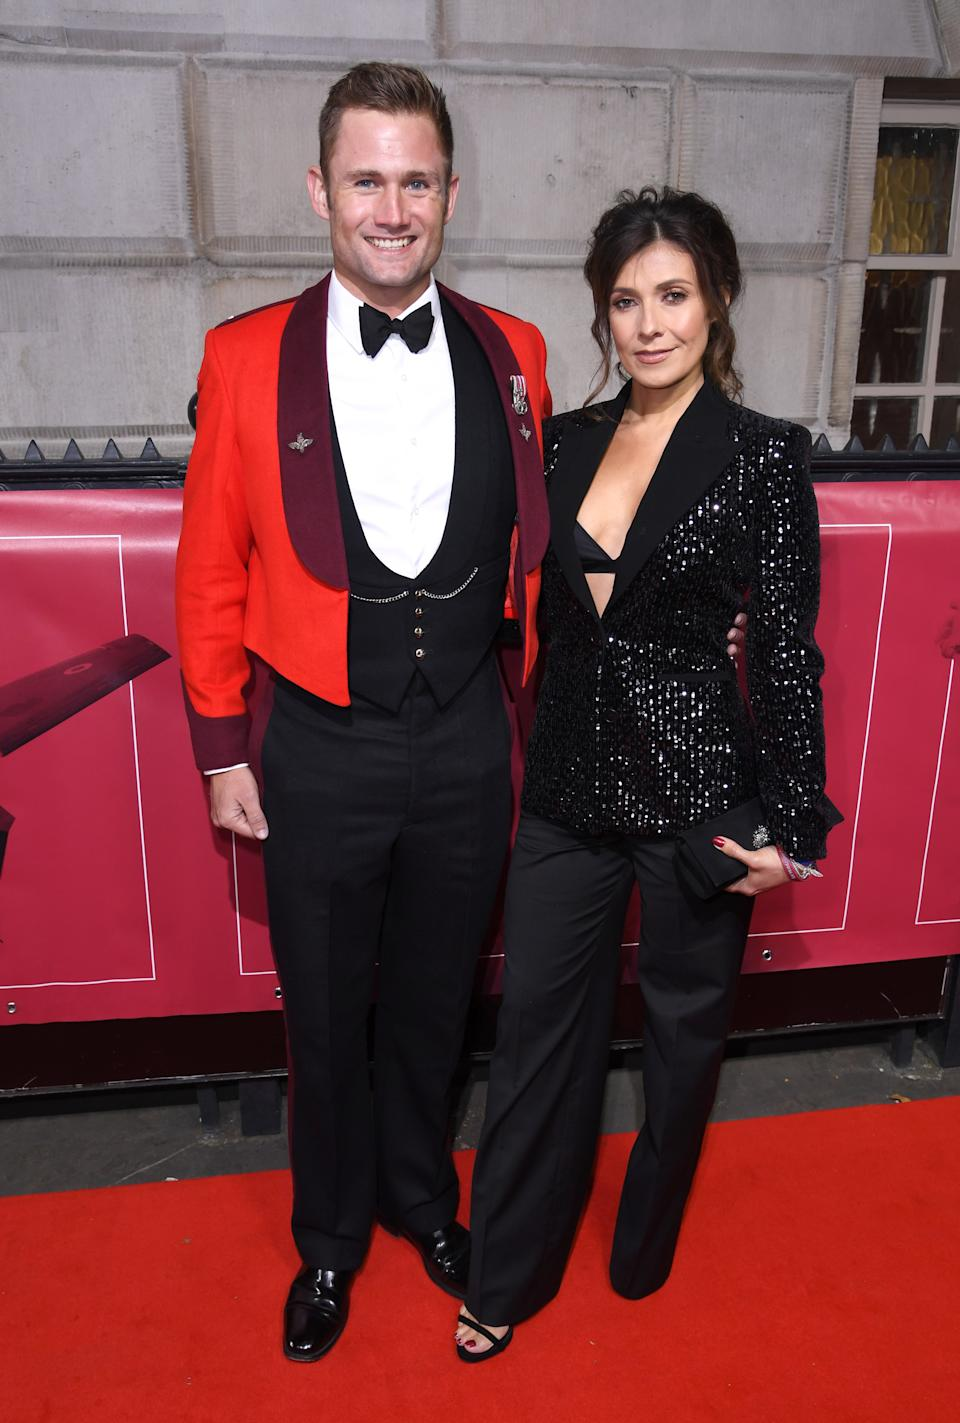 Kym Marsh and Scott Ratcliffe arriving at The Sun Military Awards 2018 held at Whitehall, London. Photo credit should read: Doug Peters/EMPICS